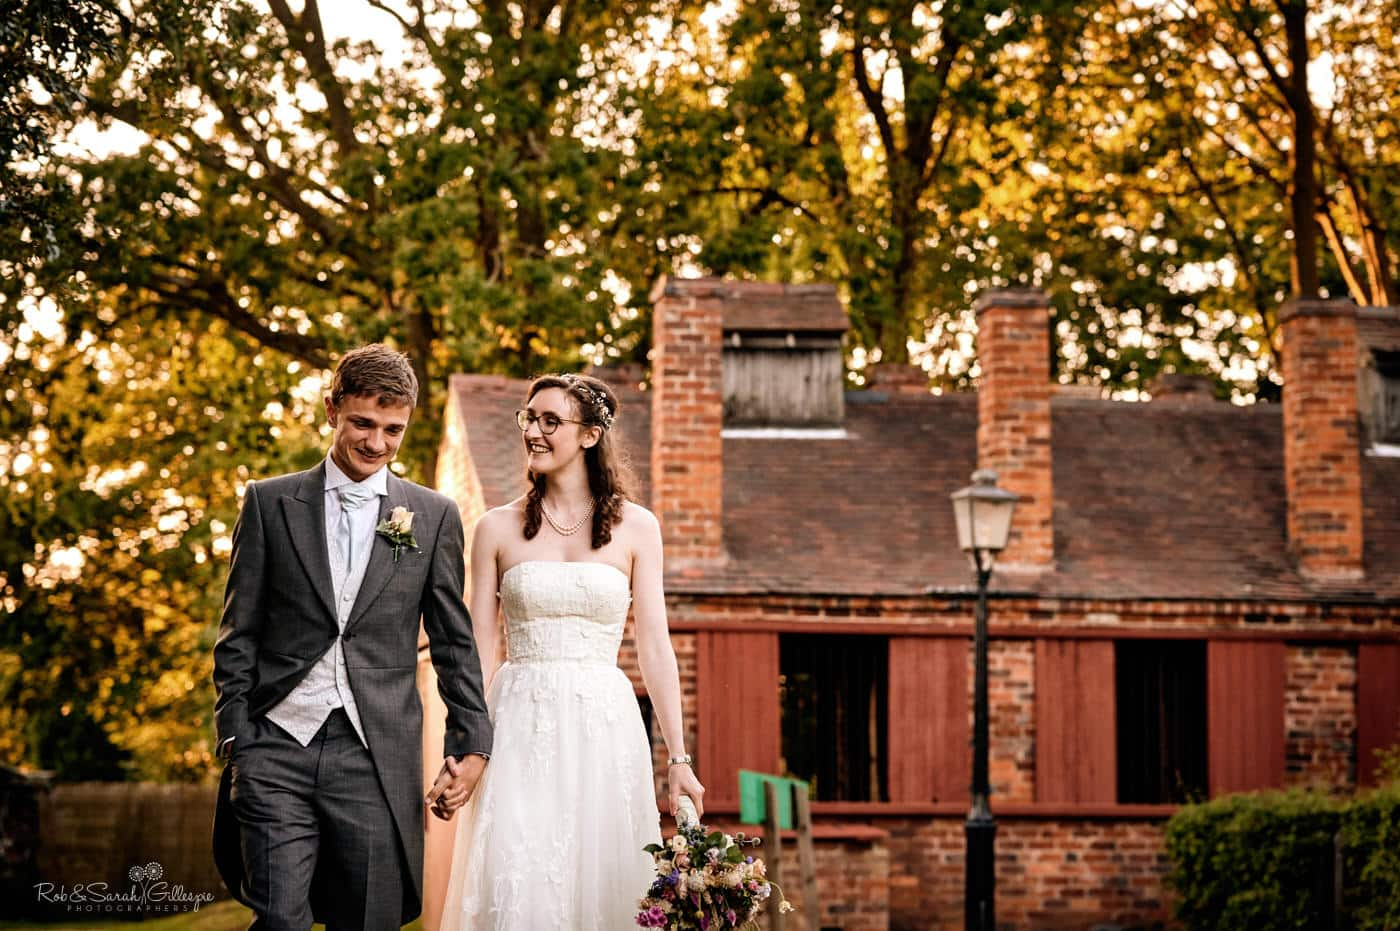 Bride and groom waking through Avoncroft Museum with old buildings and trees